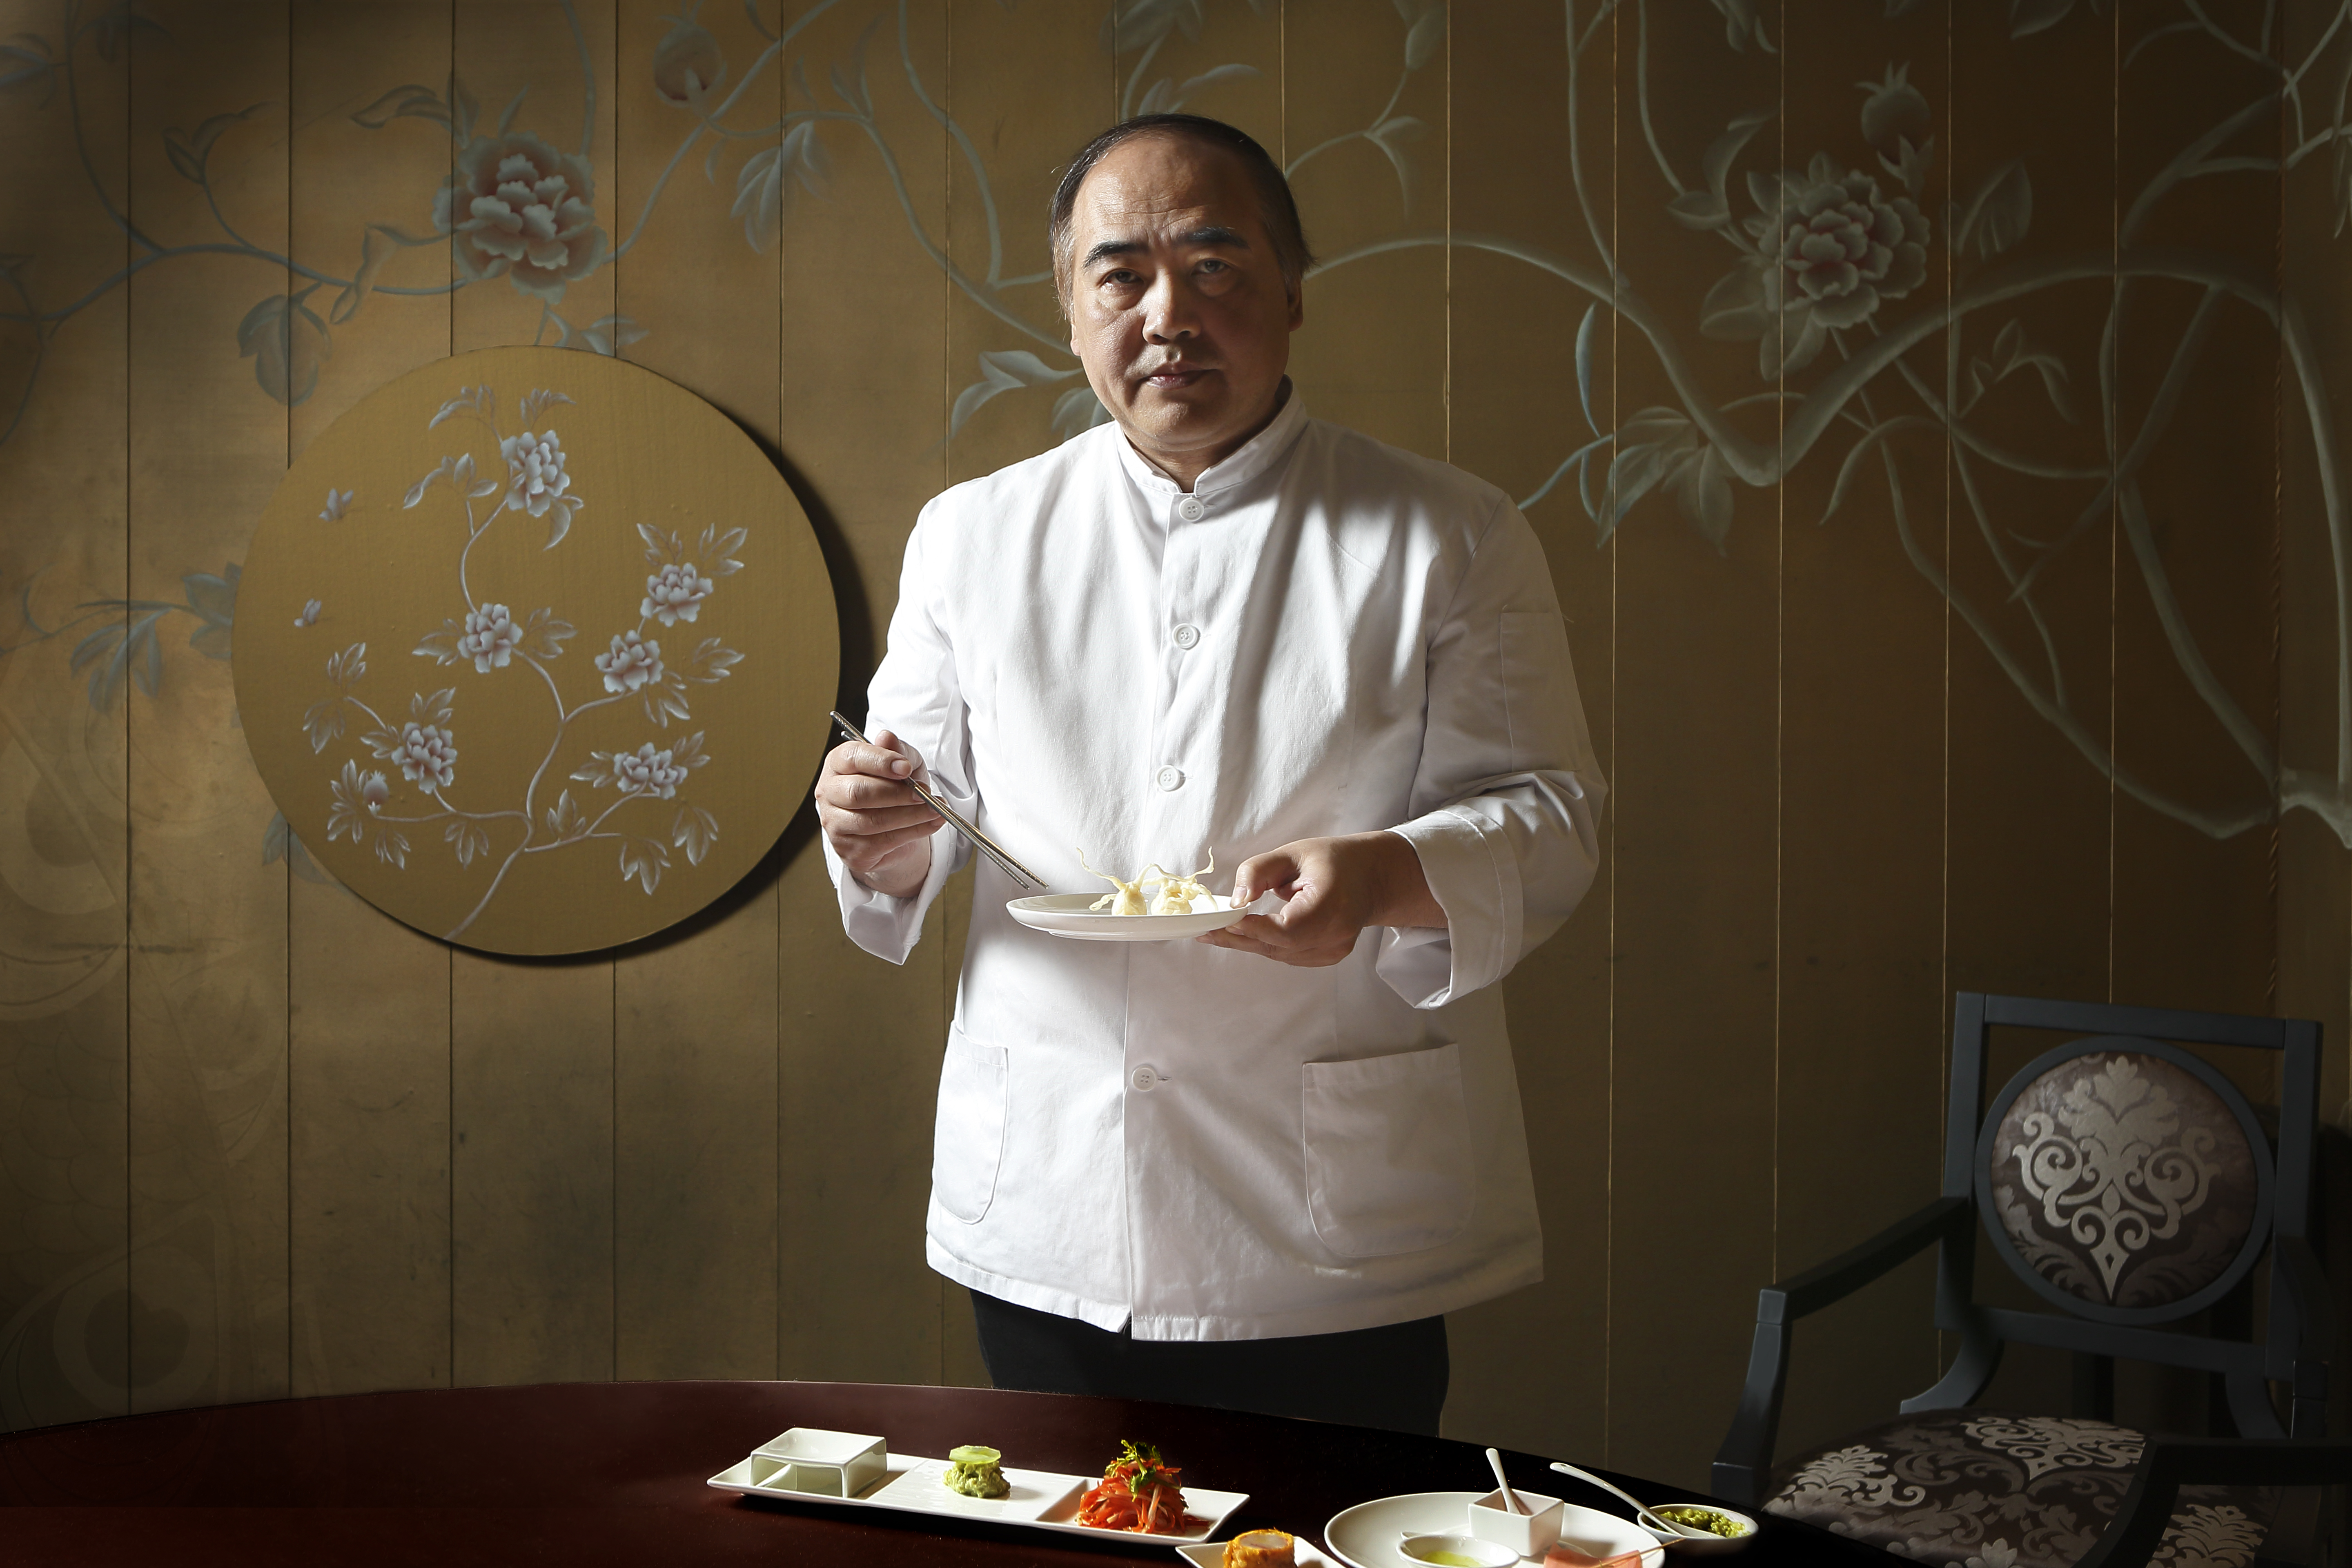 Recreating epicurean dishes served to the emperors